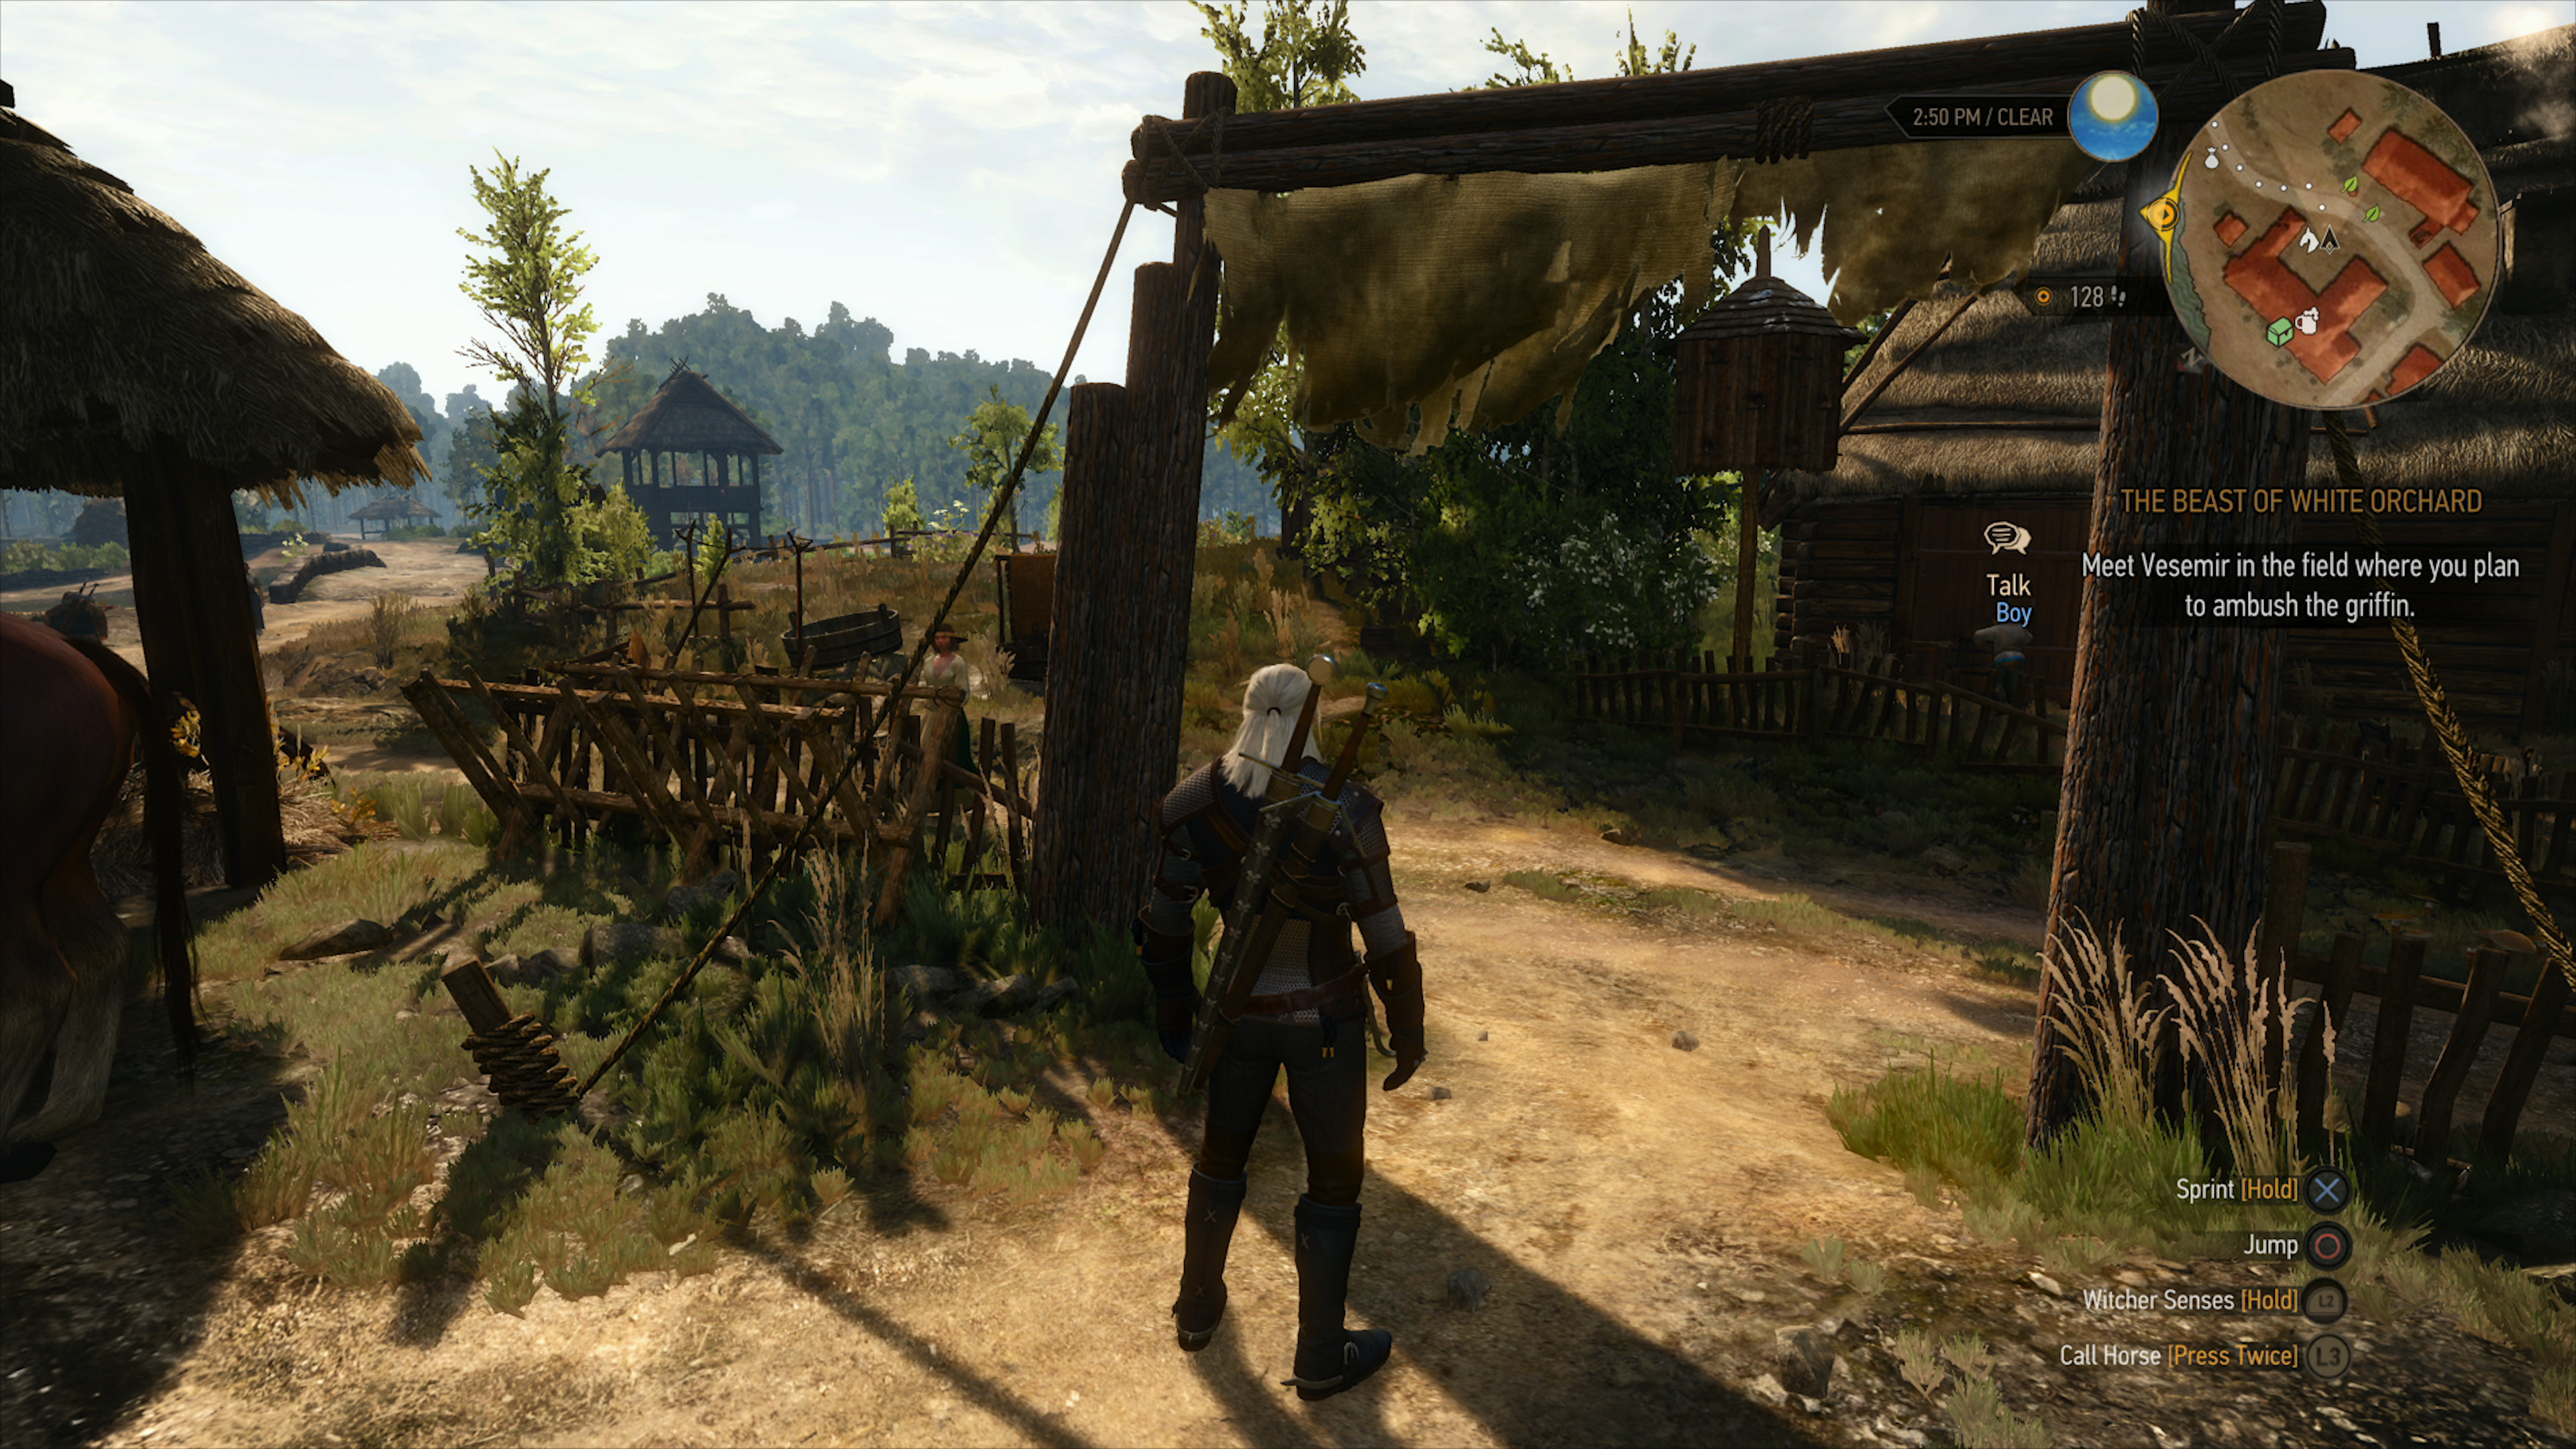 Here's what The Witcher 3 looks like at 4K on PS4 Pro